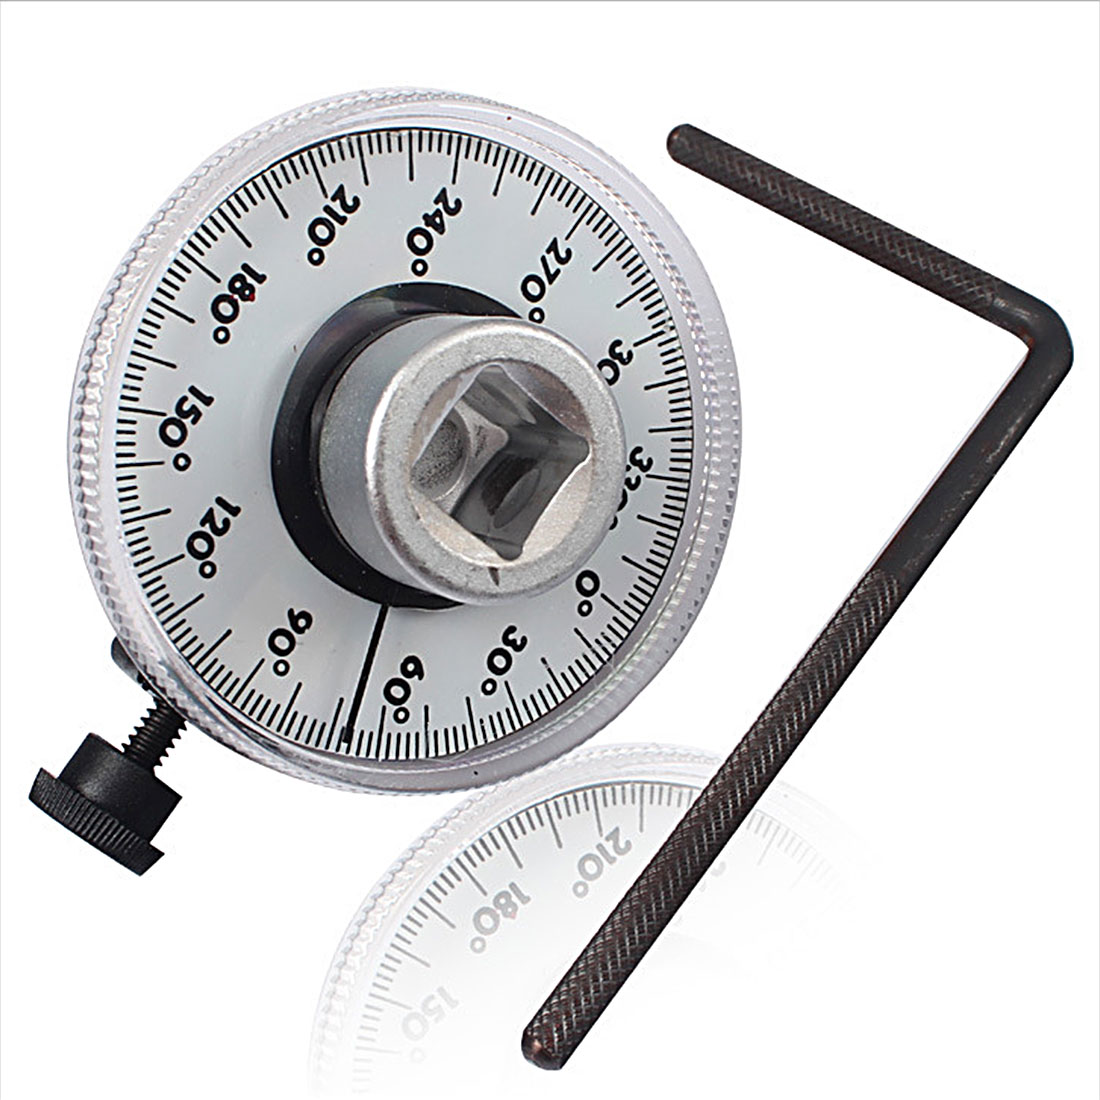 New Arrival Professional Adjustable 1/2 inch Drive Torque Angle Gauge Car Auto Garage Tool Set Measure Hand Tool Wrench